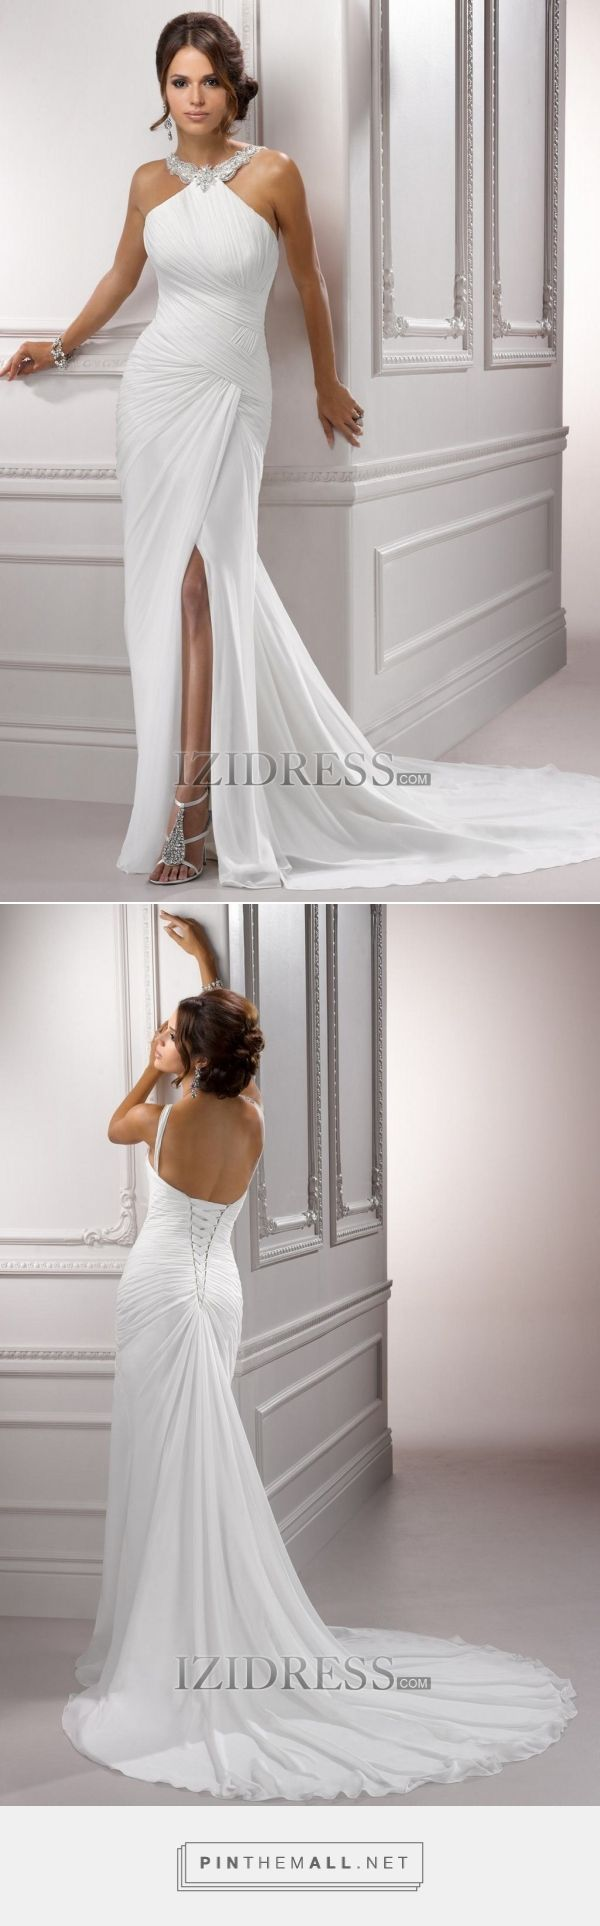 48 best Wedding Clearance Special images on Pinterest ...